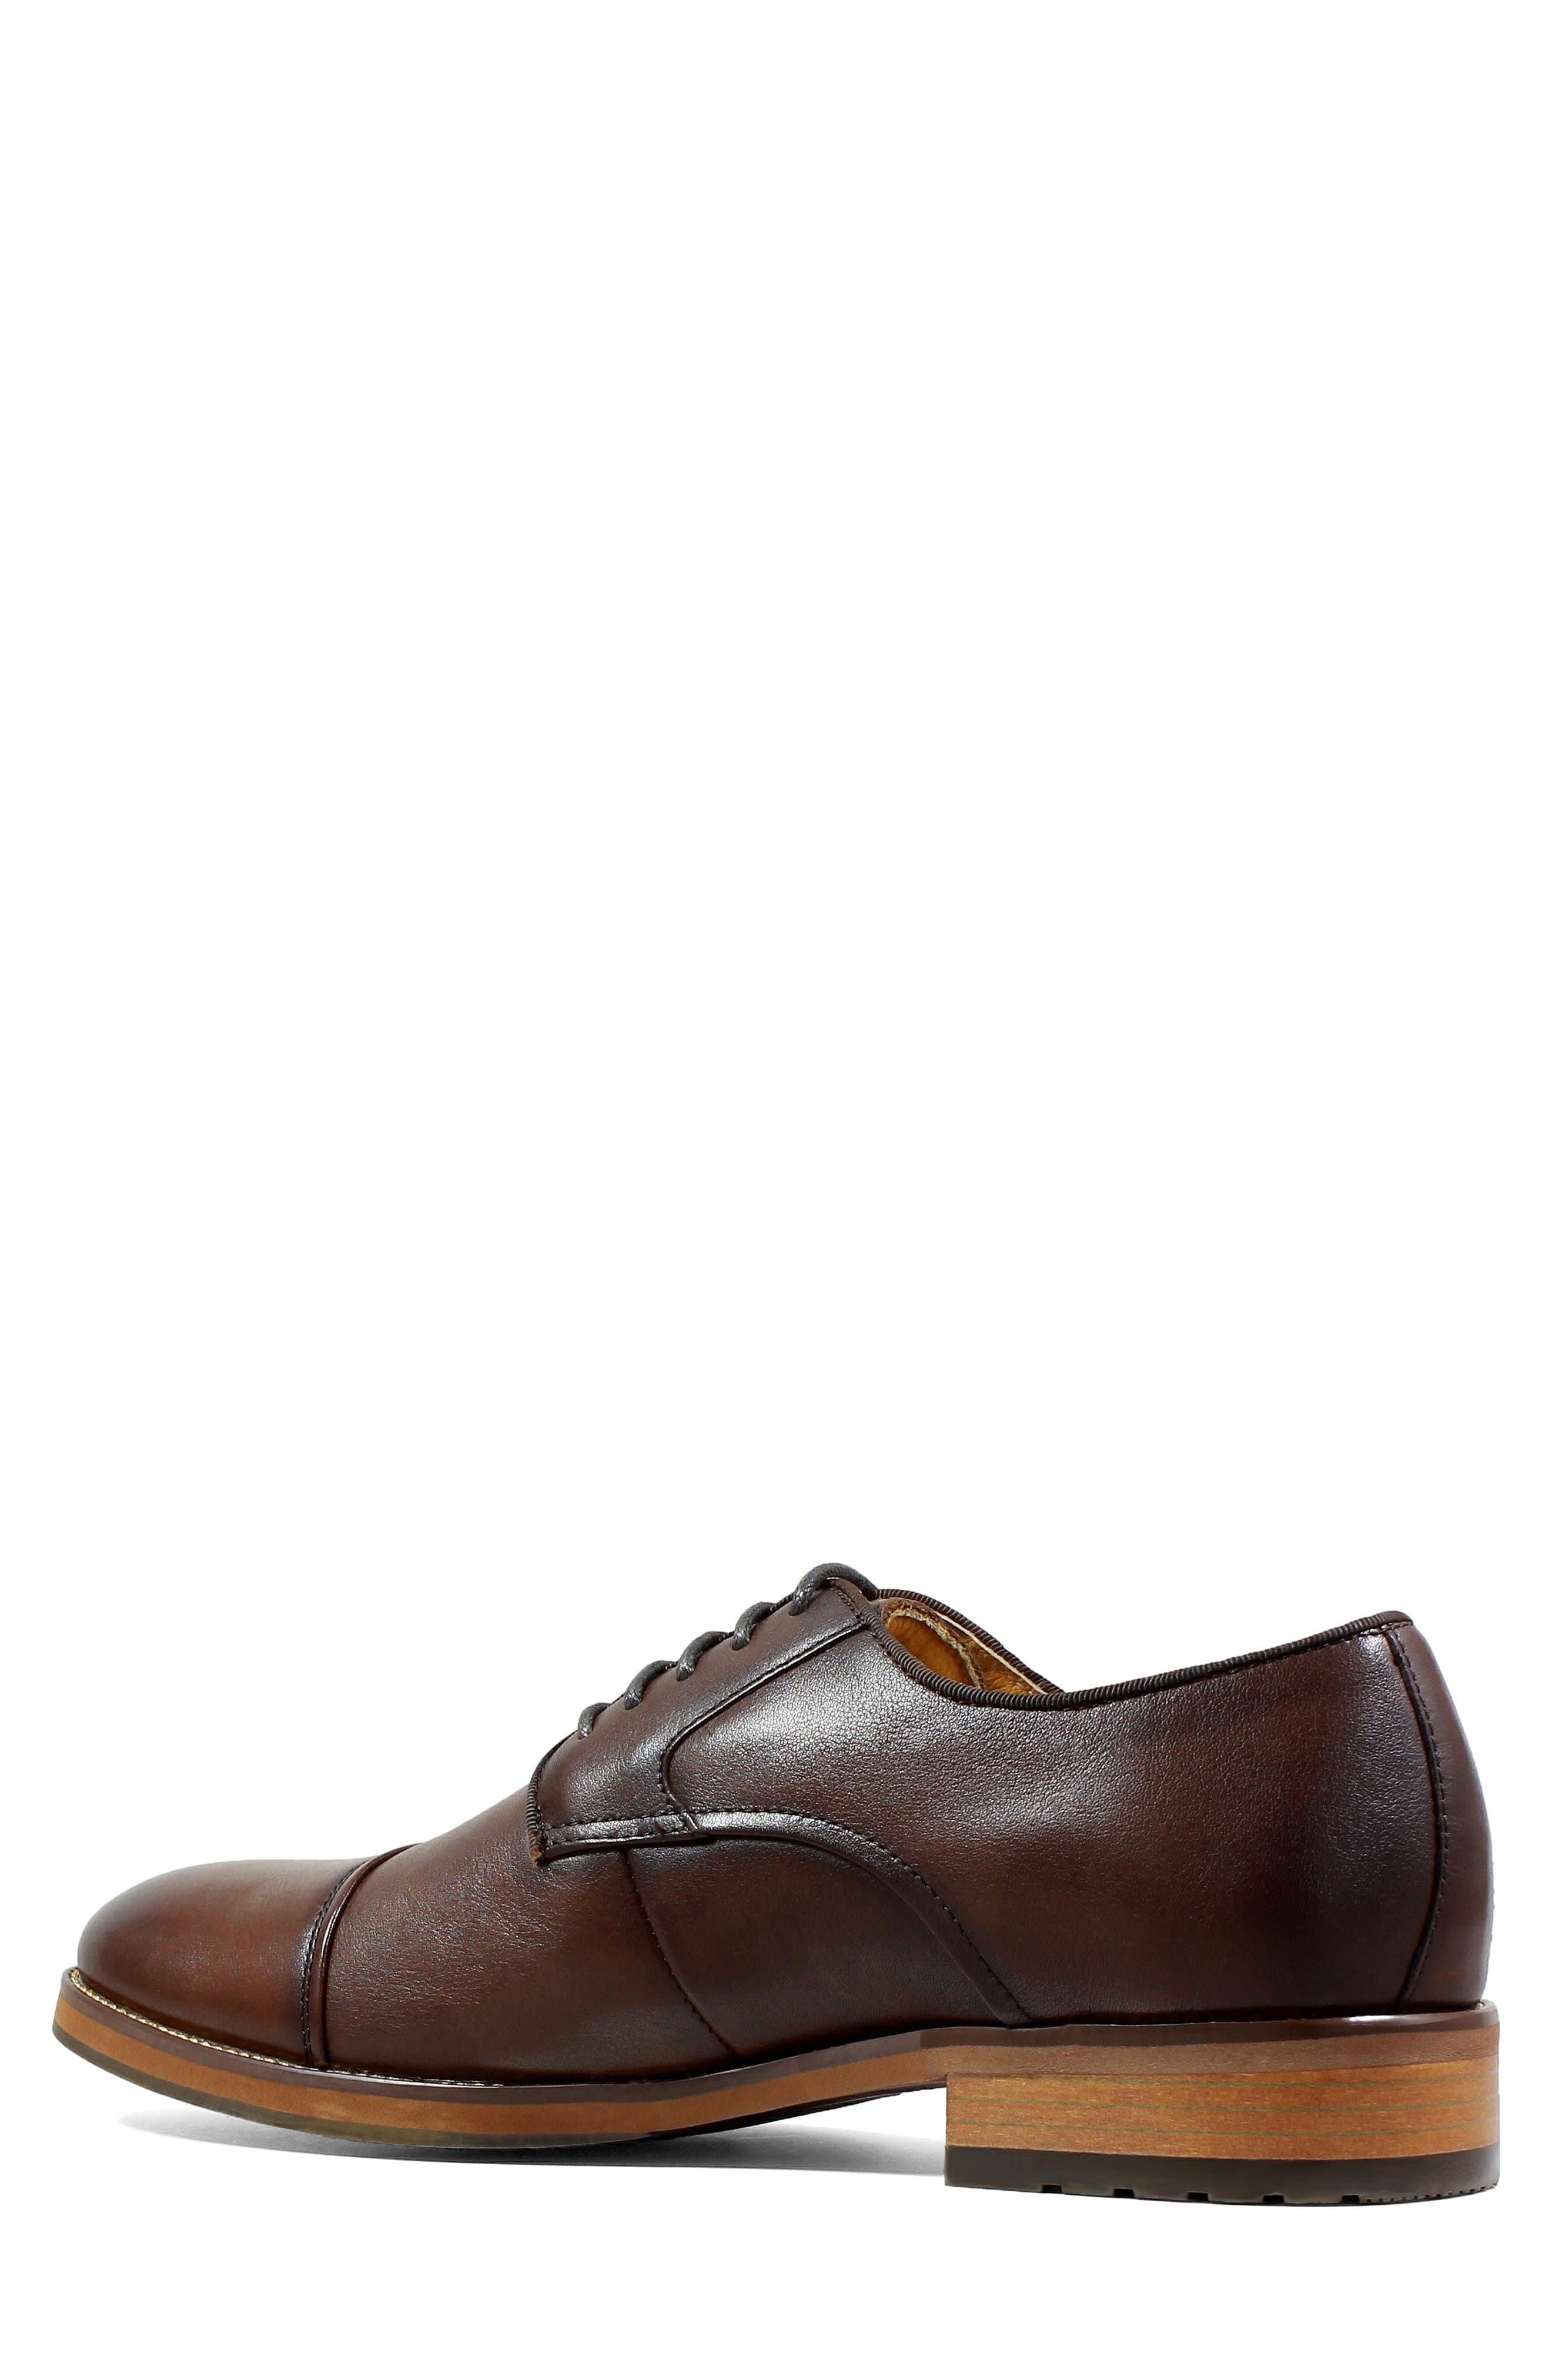 Blaze Cap Toe Derby,                             Alternate thumbnail 2, color,                             Cognac Leather